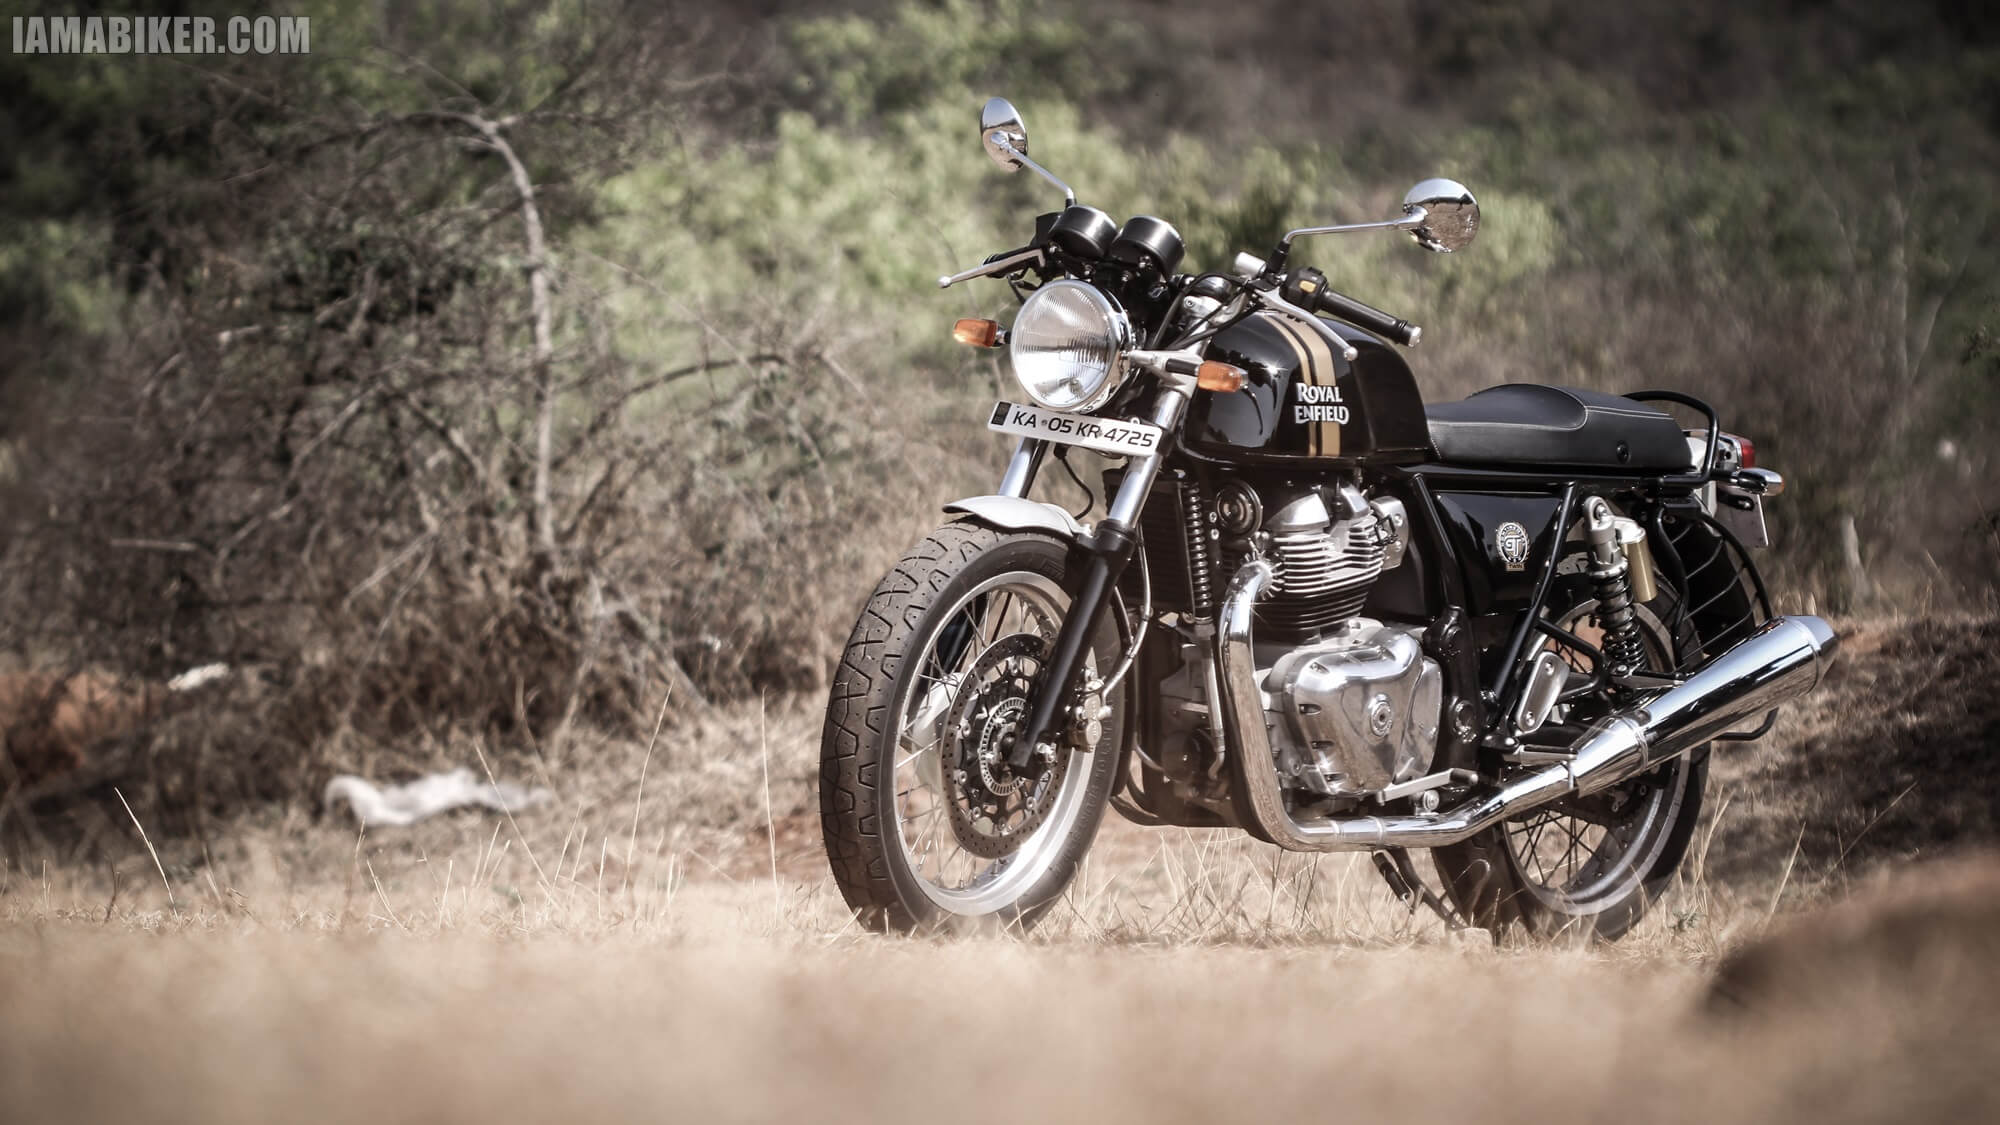 Royal Enfield Continental Gt 650 Hd Wallpapers Iamabiker Everything Motorcycle